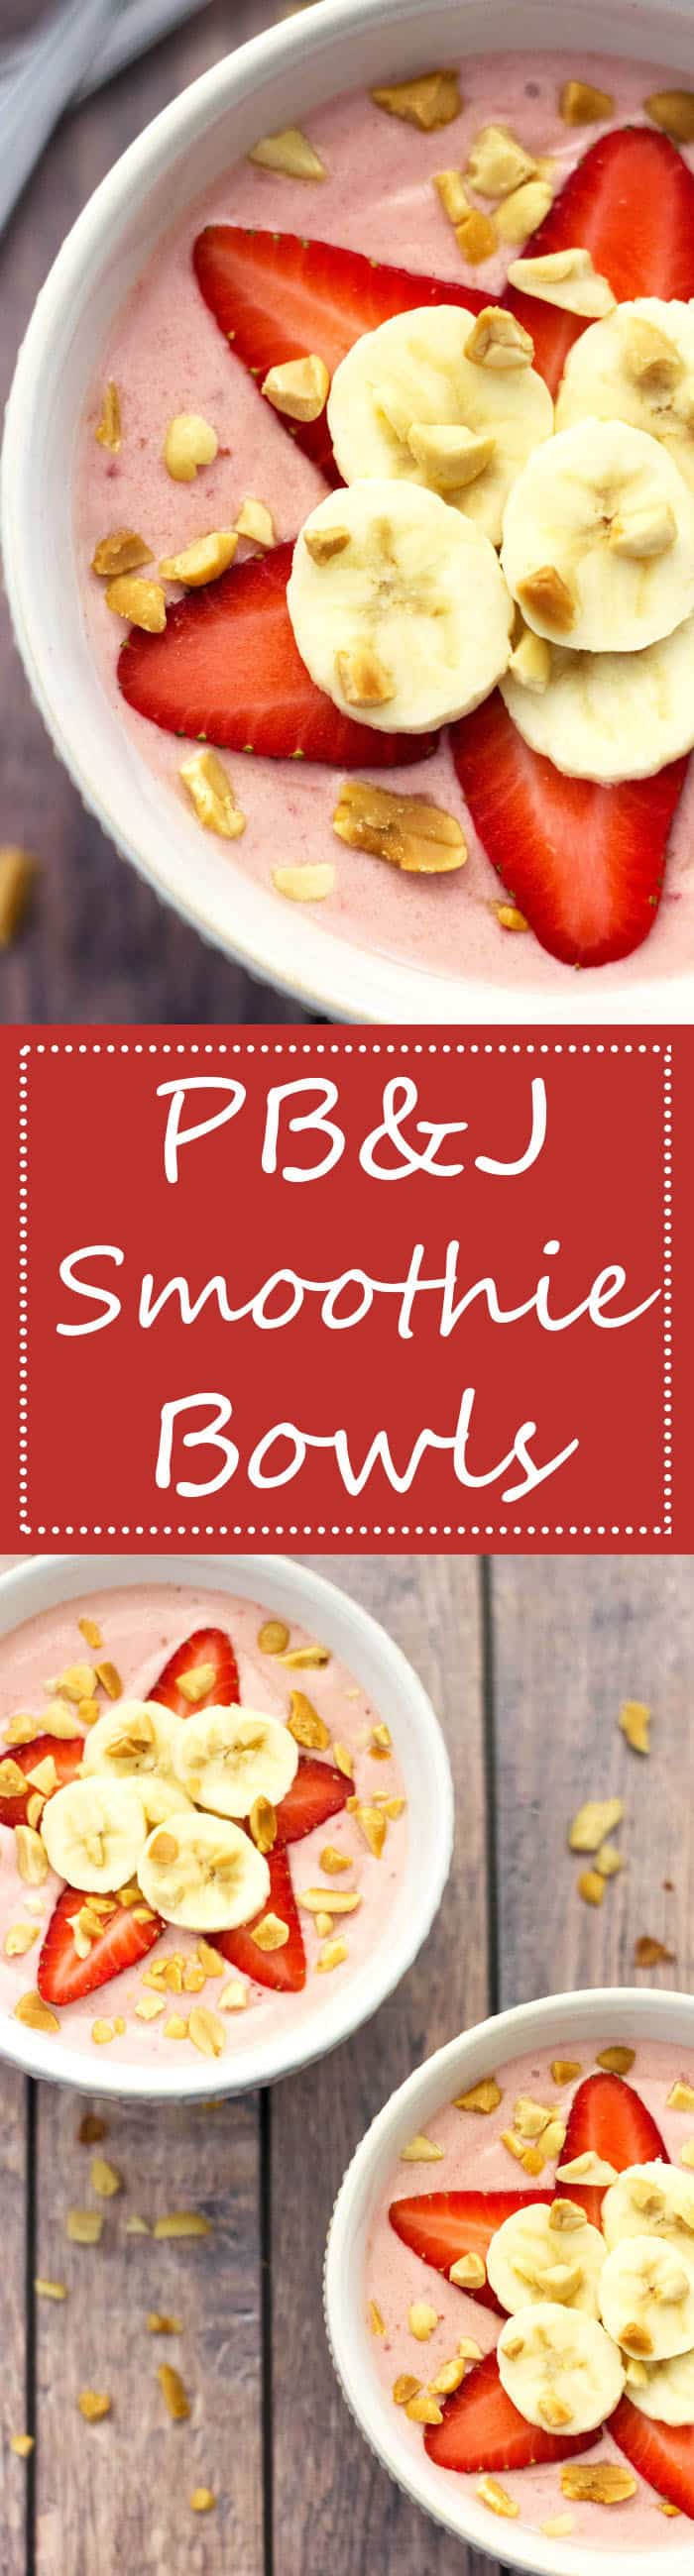 PB&J Smoothie Bowls - This recipe for Peanut Butter and Jelly Smoothie Bowls is one of the tastiest, most simple and nutritious, prepare-ahead breakfast recipes ever!